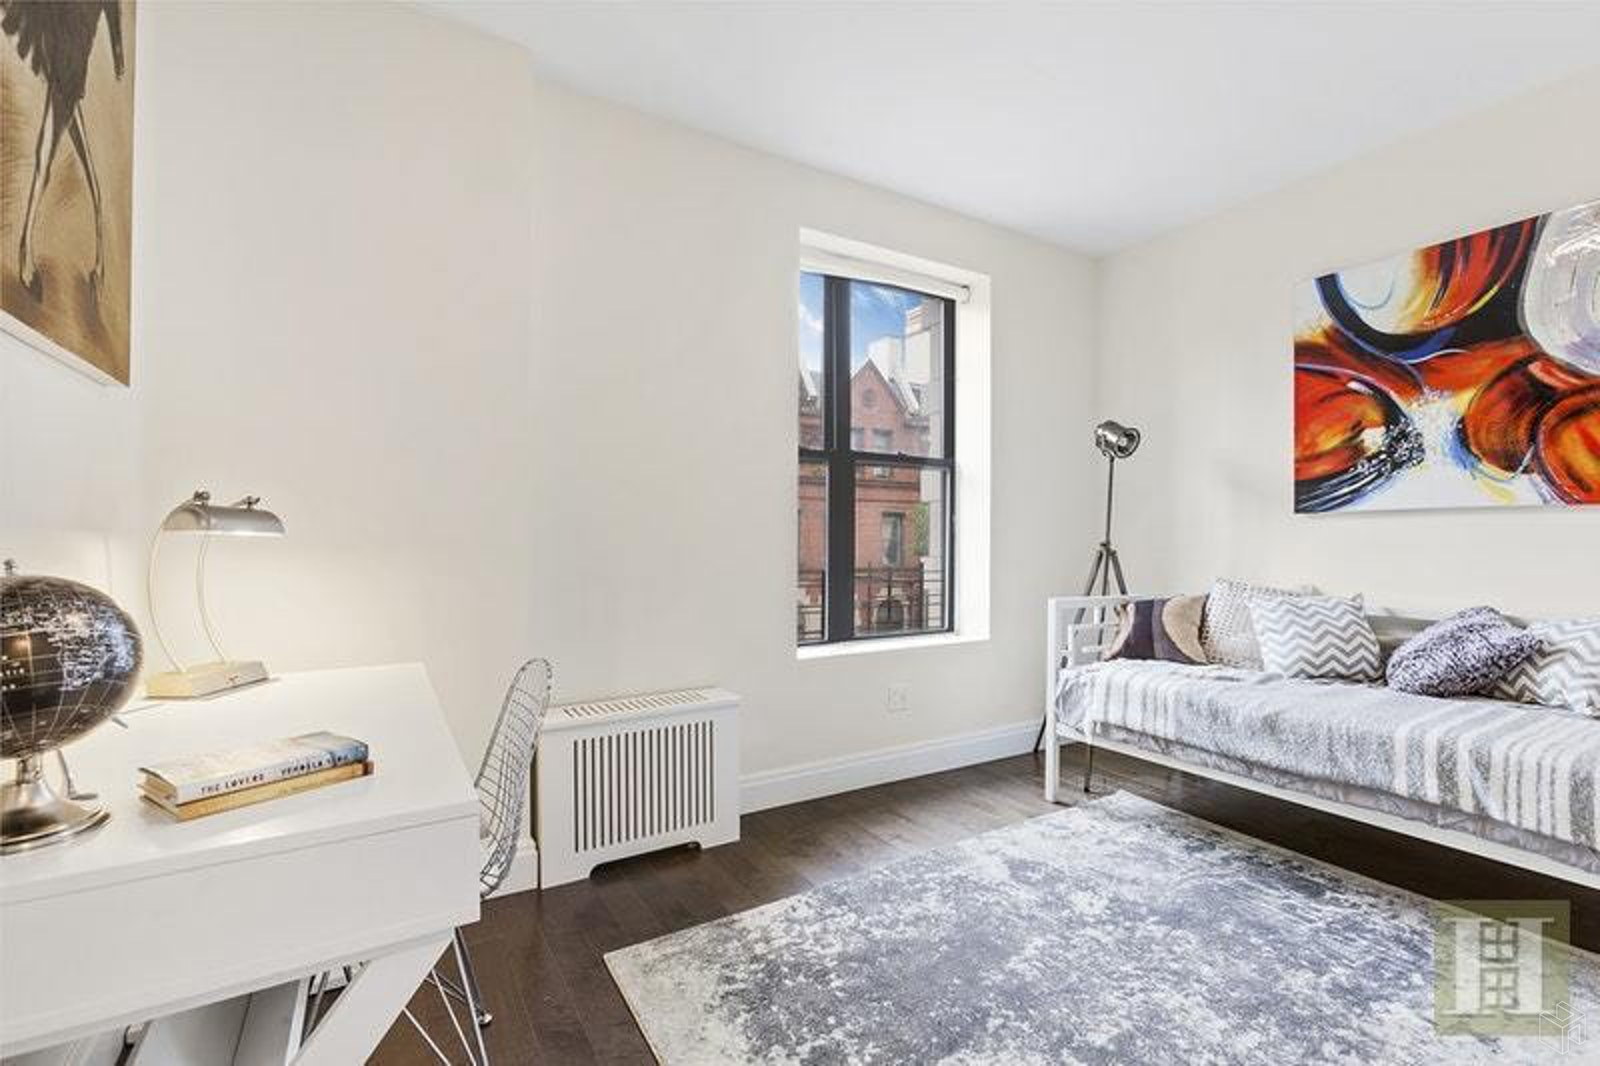 98 Morningside Avenue 26, Upper Manhattan, NYC, 10027, Price Not Disclosed, Rented Property, Halstead Real Estate, Photo 2